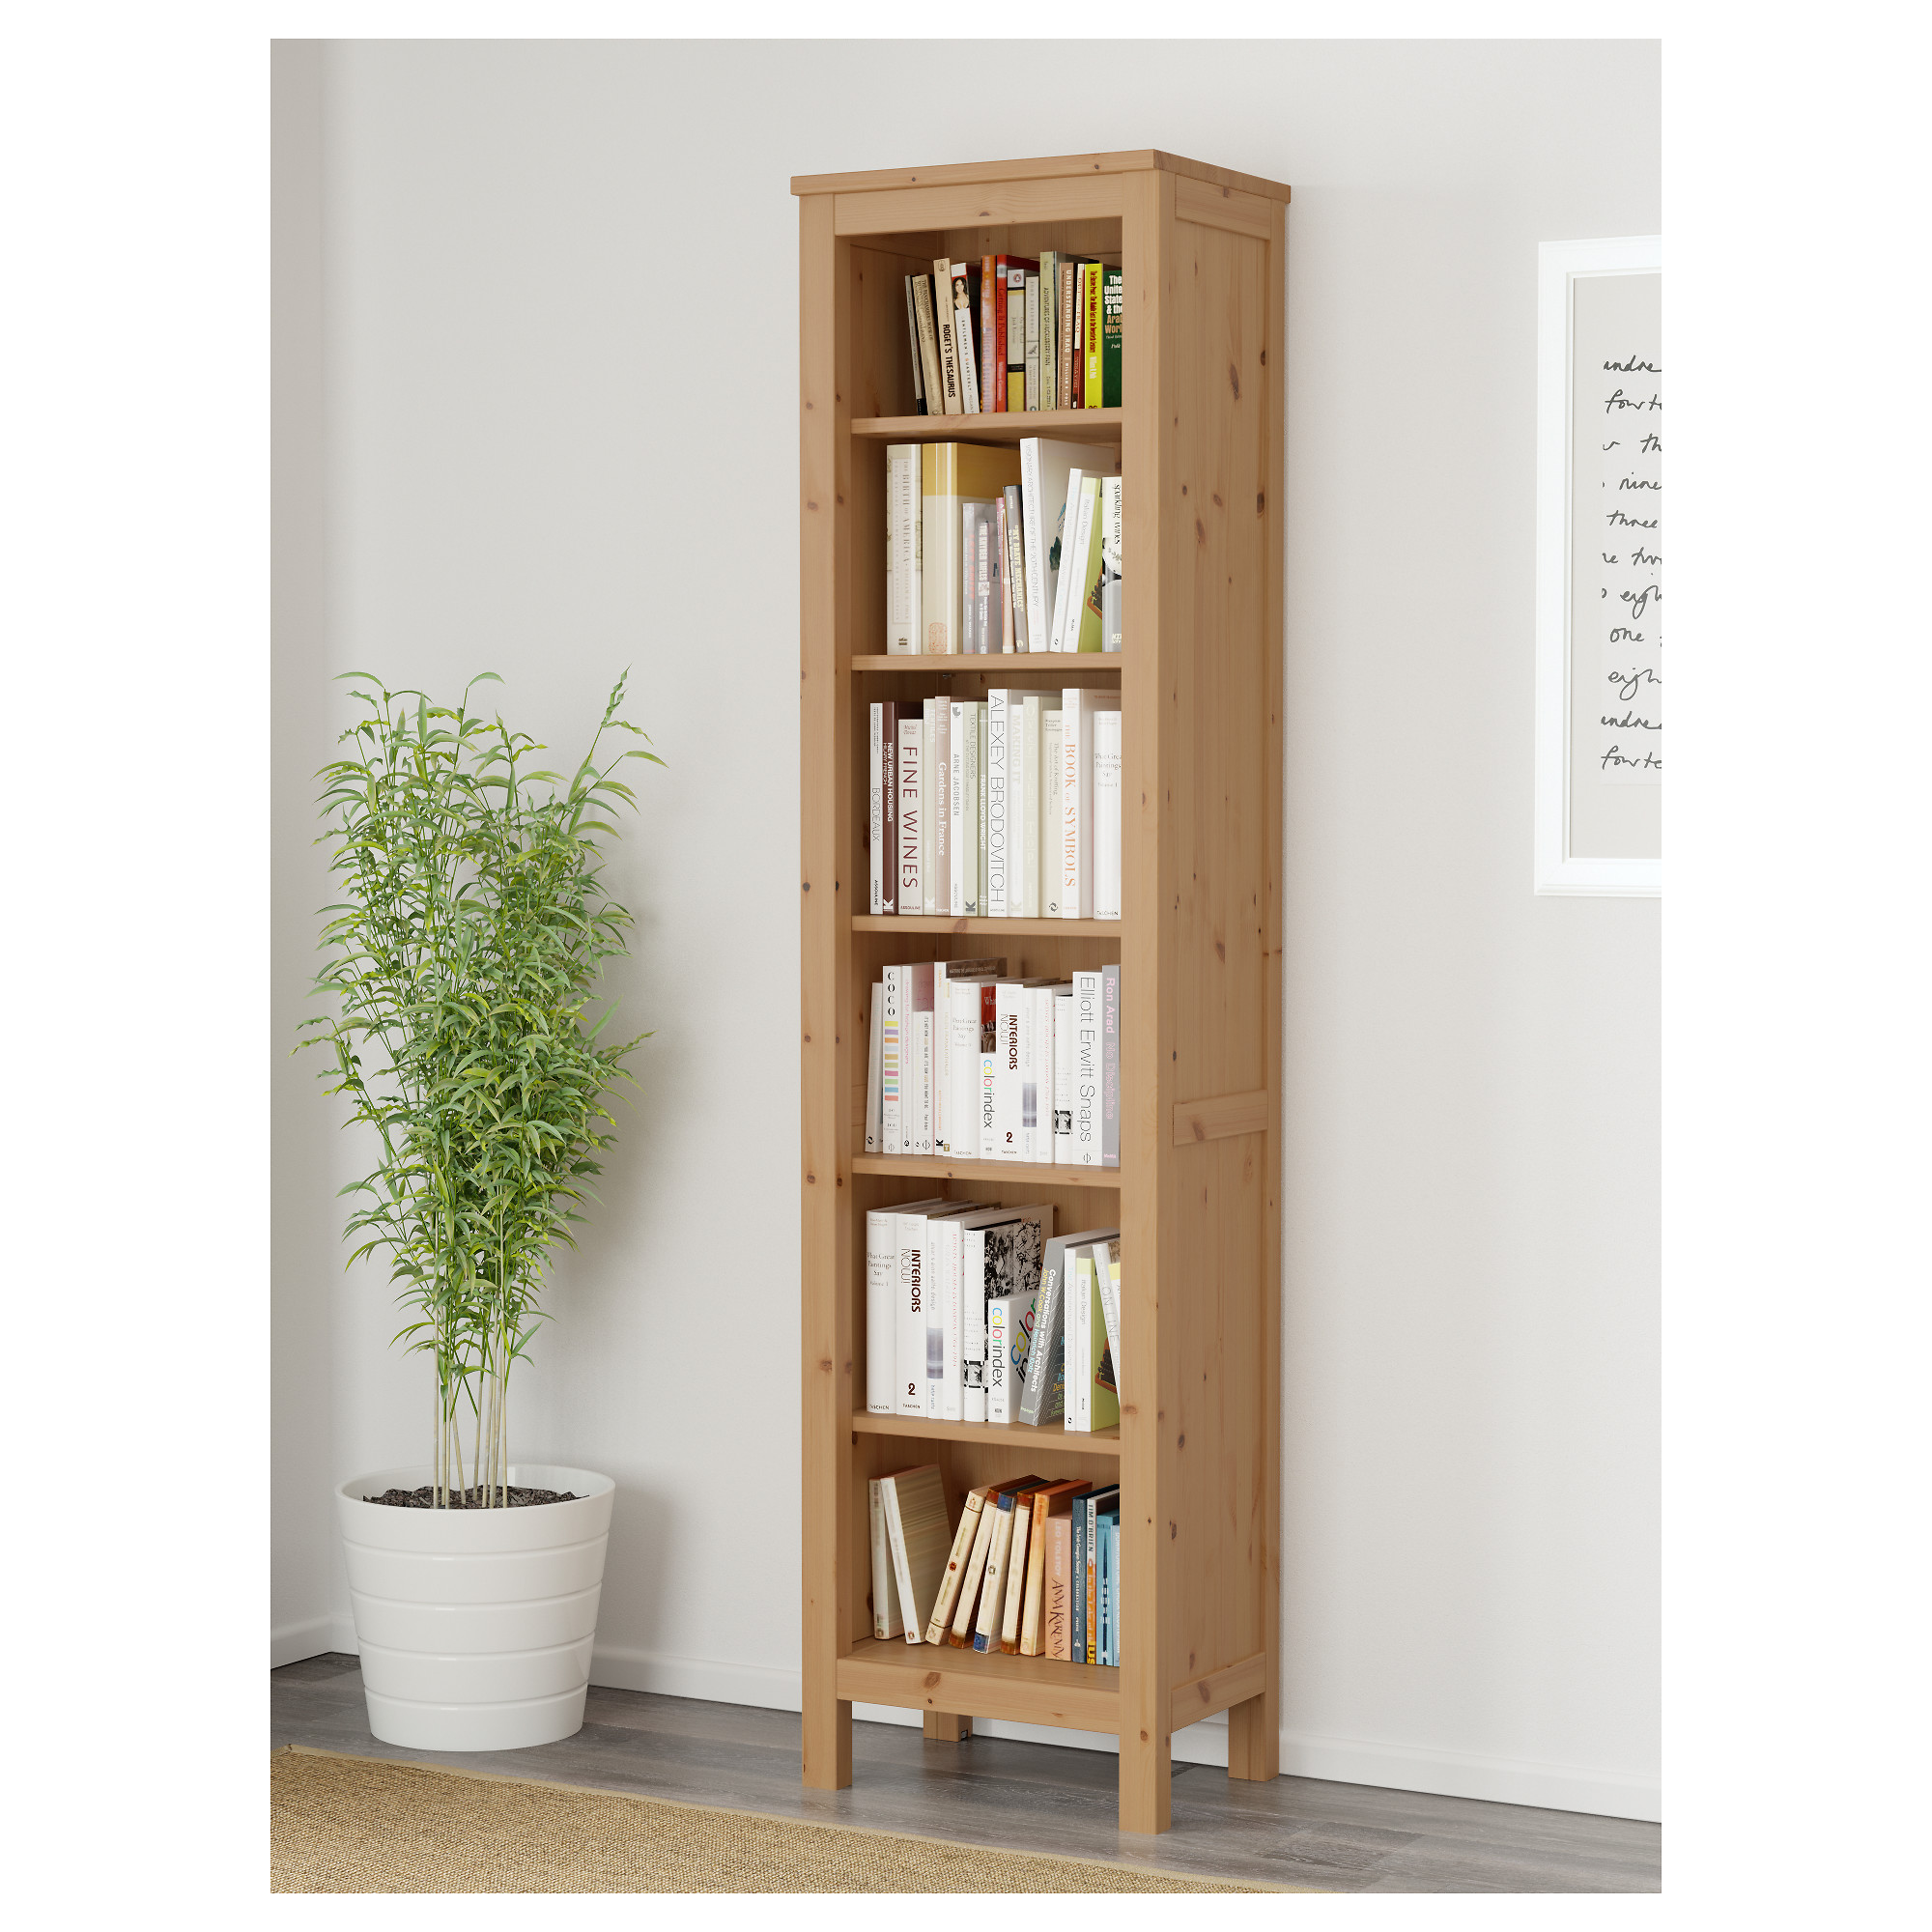 large rooms doors harbor featured solid awesome size house inspirational is a bookcase bookcases bookshelf glass in full inspirations with living wood of this